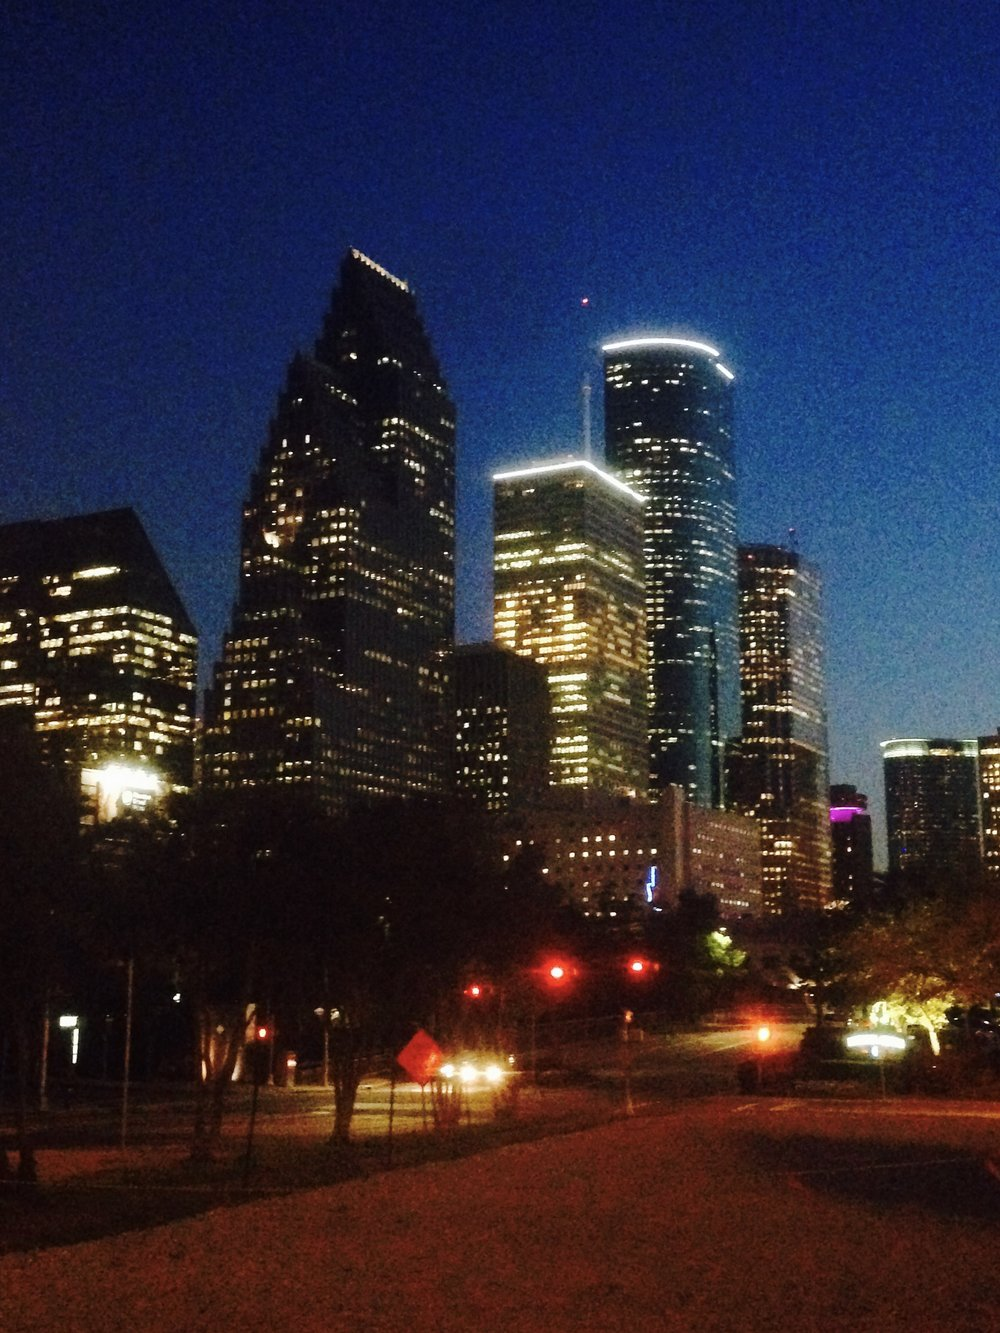 Houston at night.